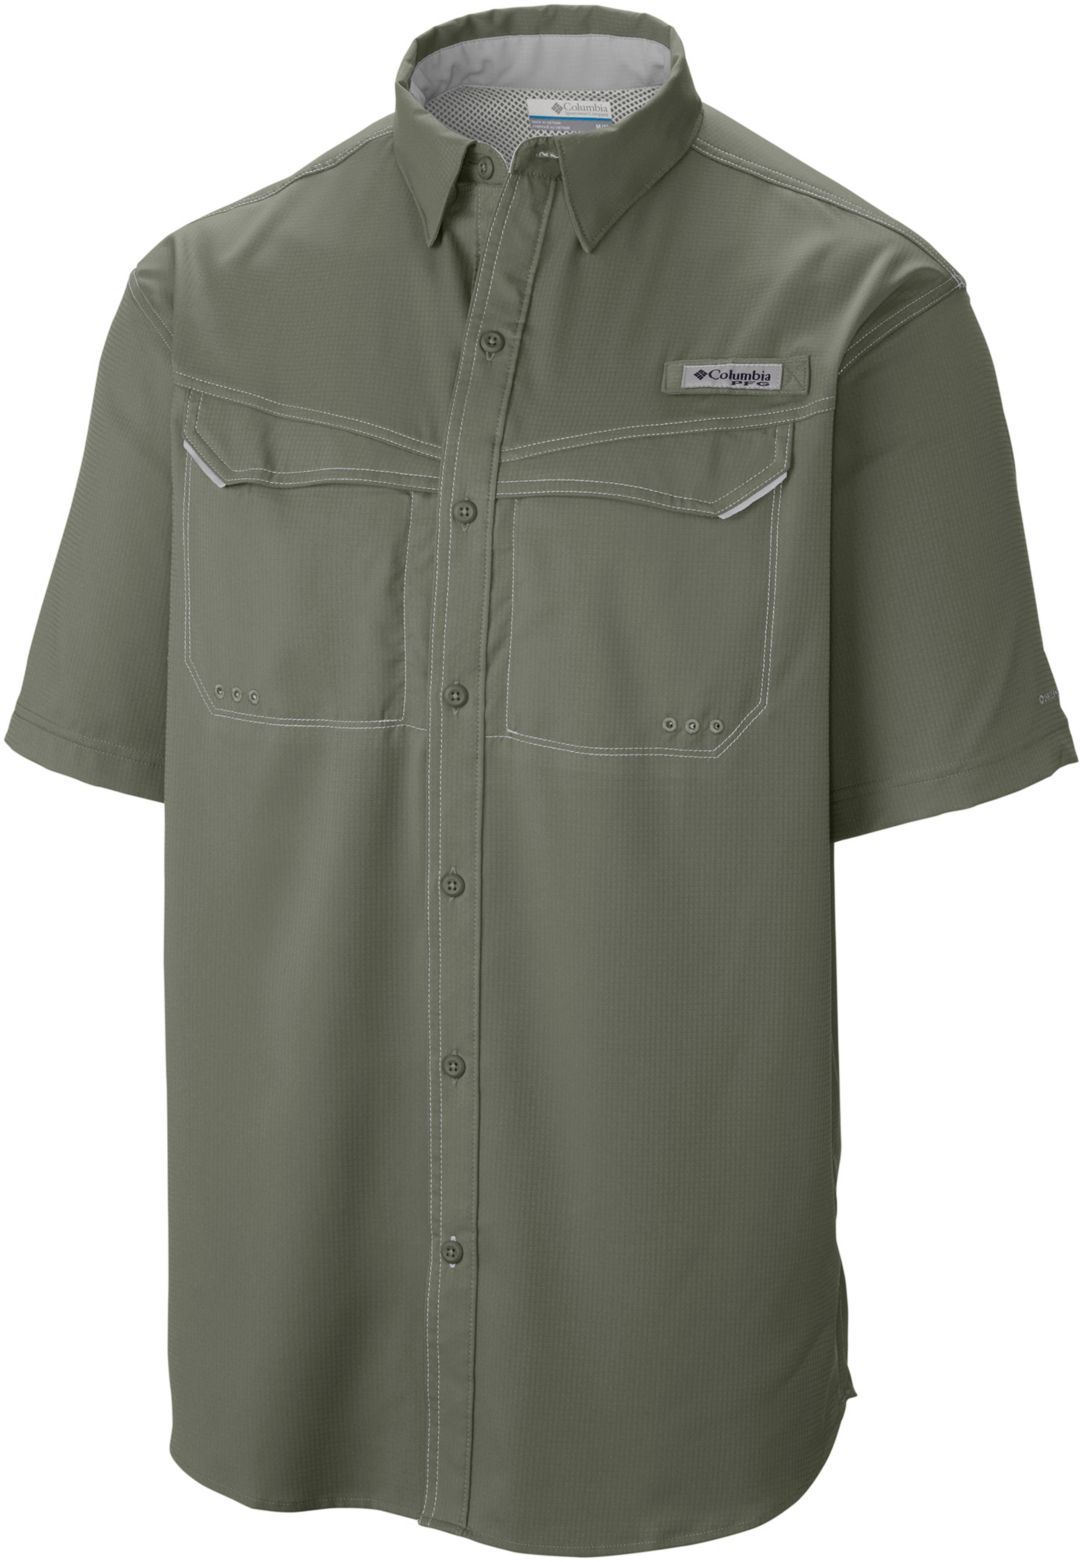 07f324f5ae8 Columbia Men's PFG Low Drag Offshore Short Sleeve Shirt | DICK'S ...